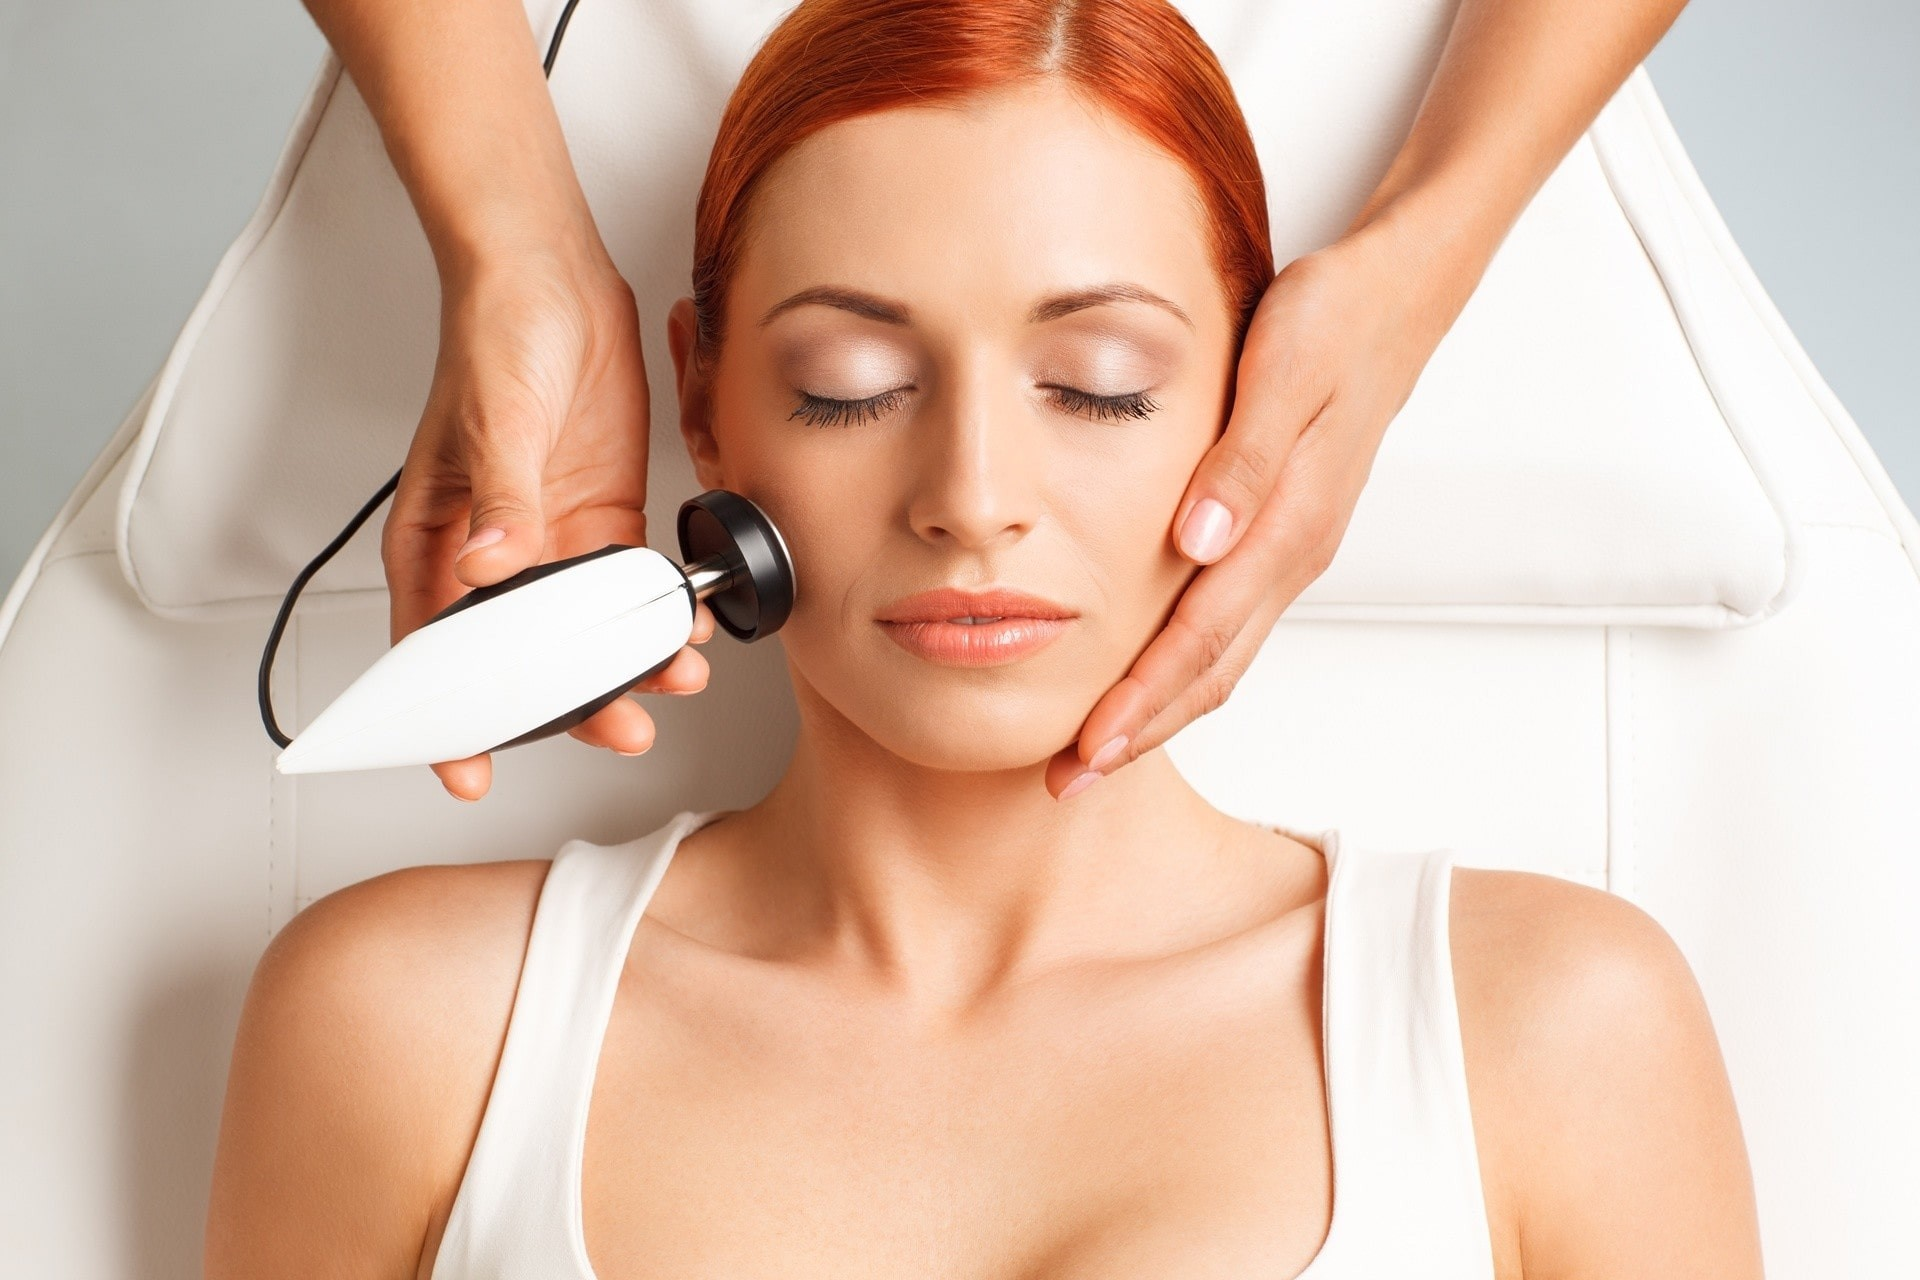 woman having radiofrequency on her face.